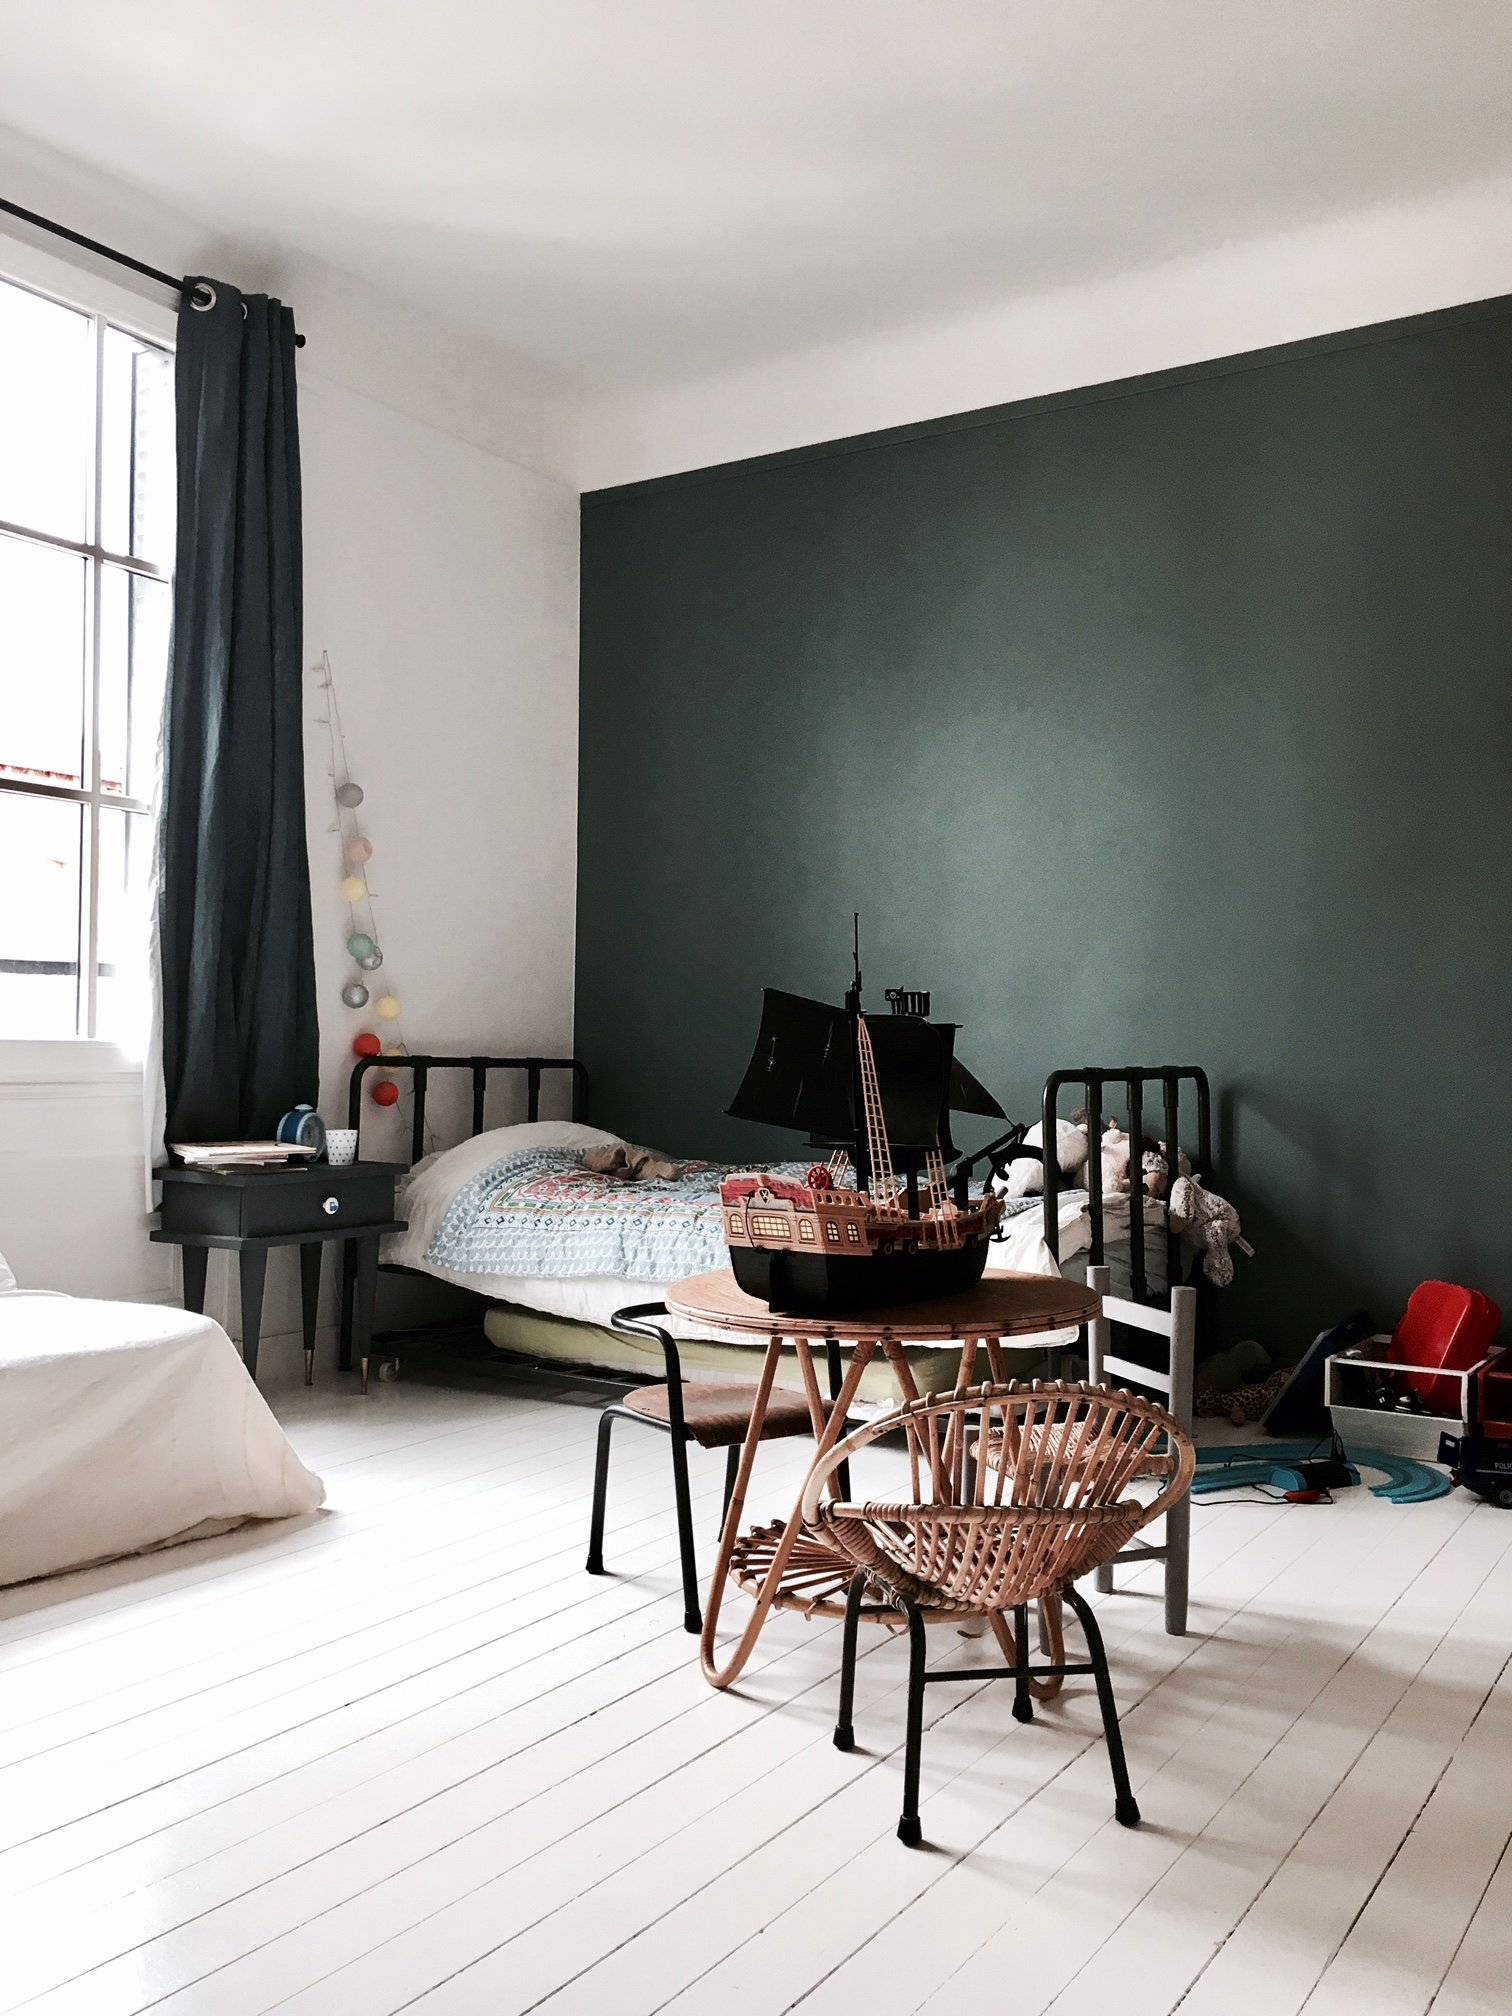 A green accent wall in a cute, modern kid's room.